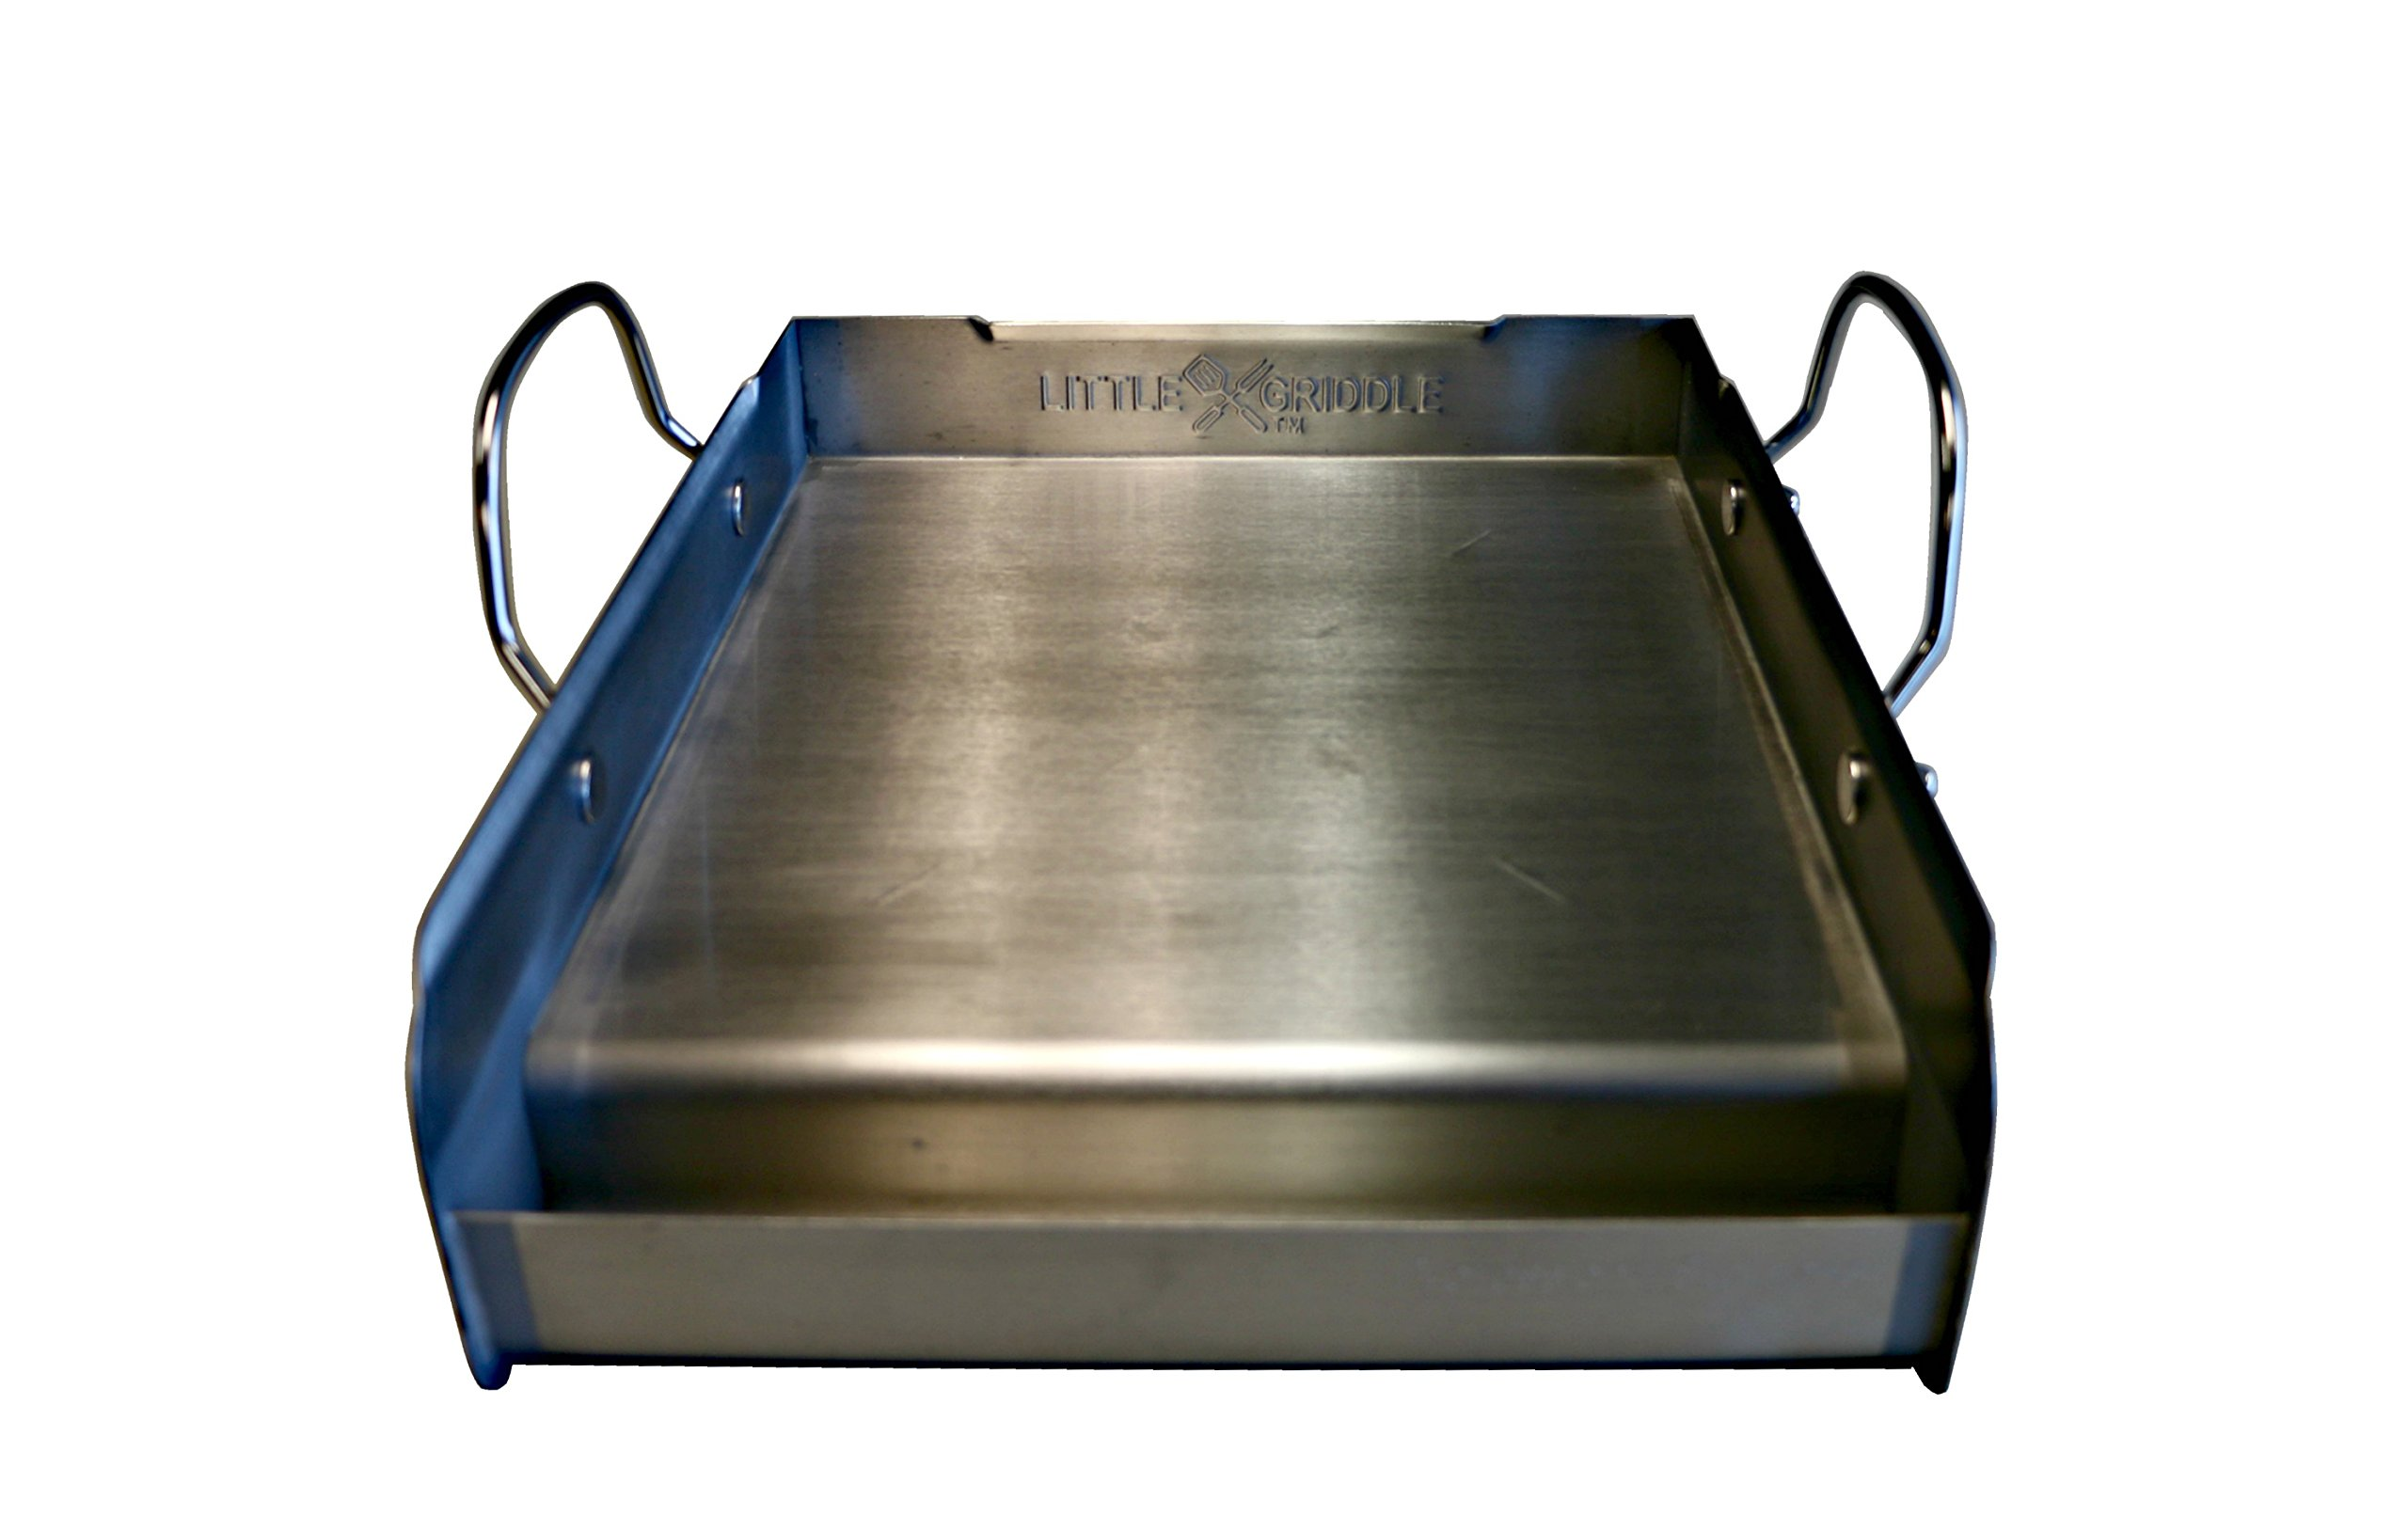 Little Griddle GQ120 100% Stainless Steel Medium-Sized Professional Griddle with Even Heating Bracing and Removable Handles for Charcoal/Gas Grills, Camping, Tailgating, and Parties (14''x16''x6.5'')